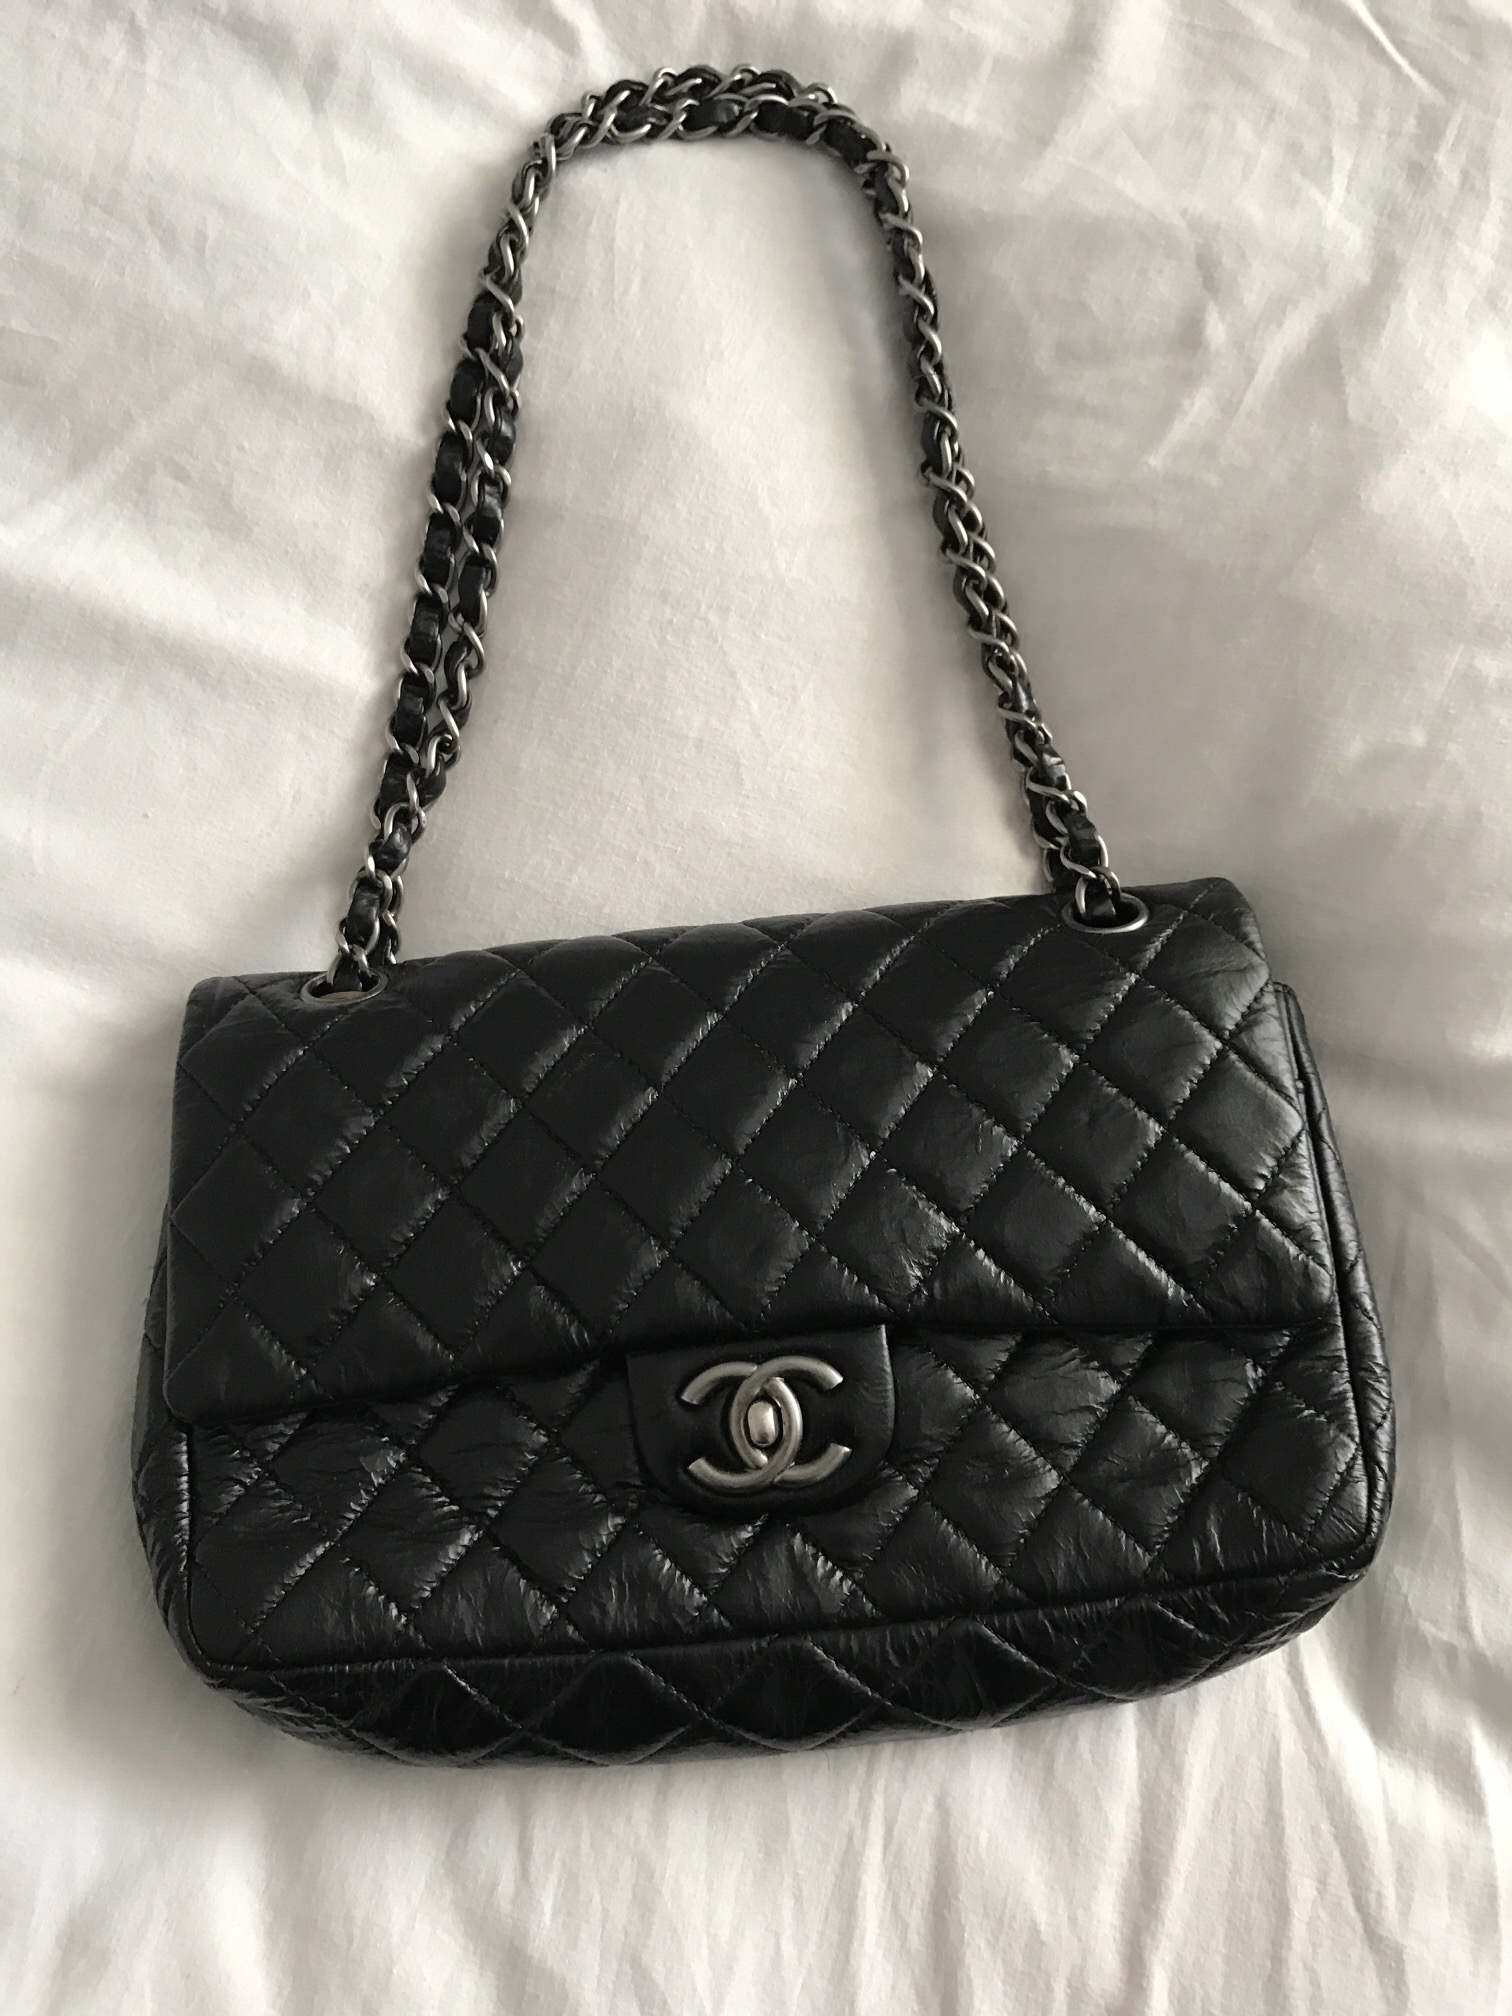 Lot 19 - CHANEL HANDBAG